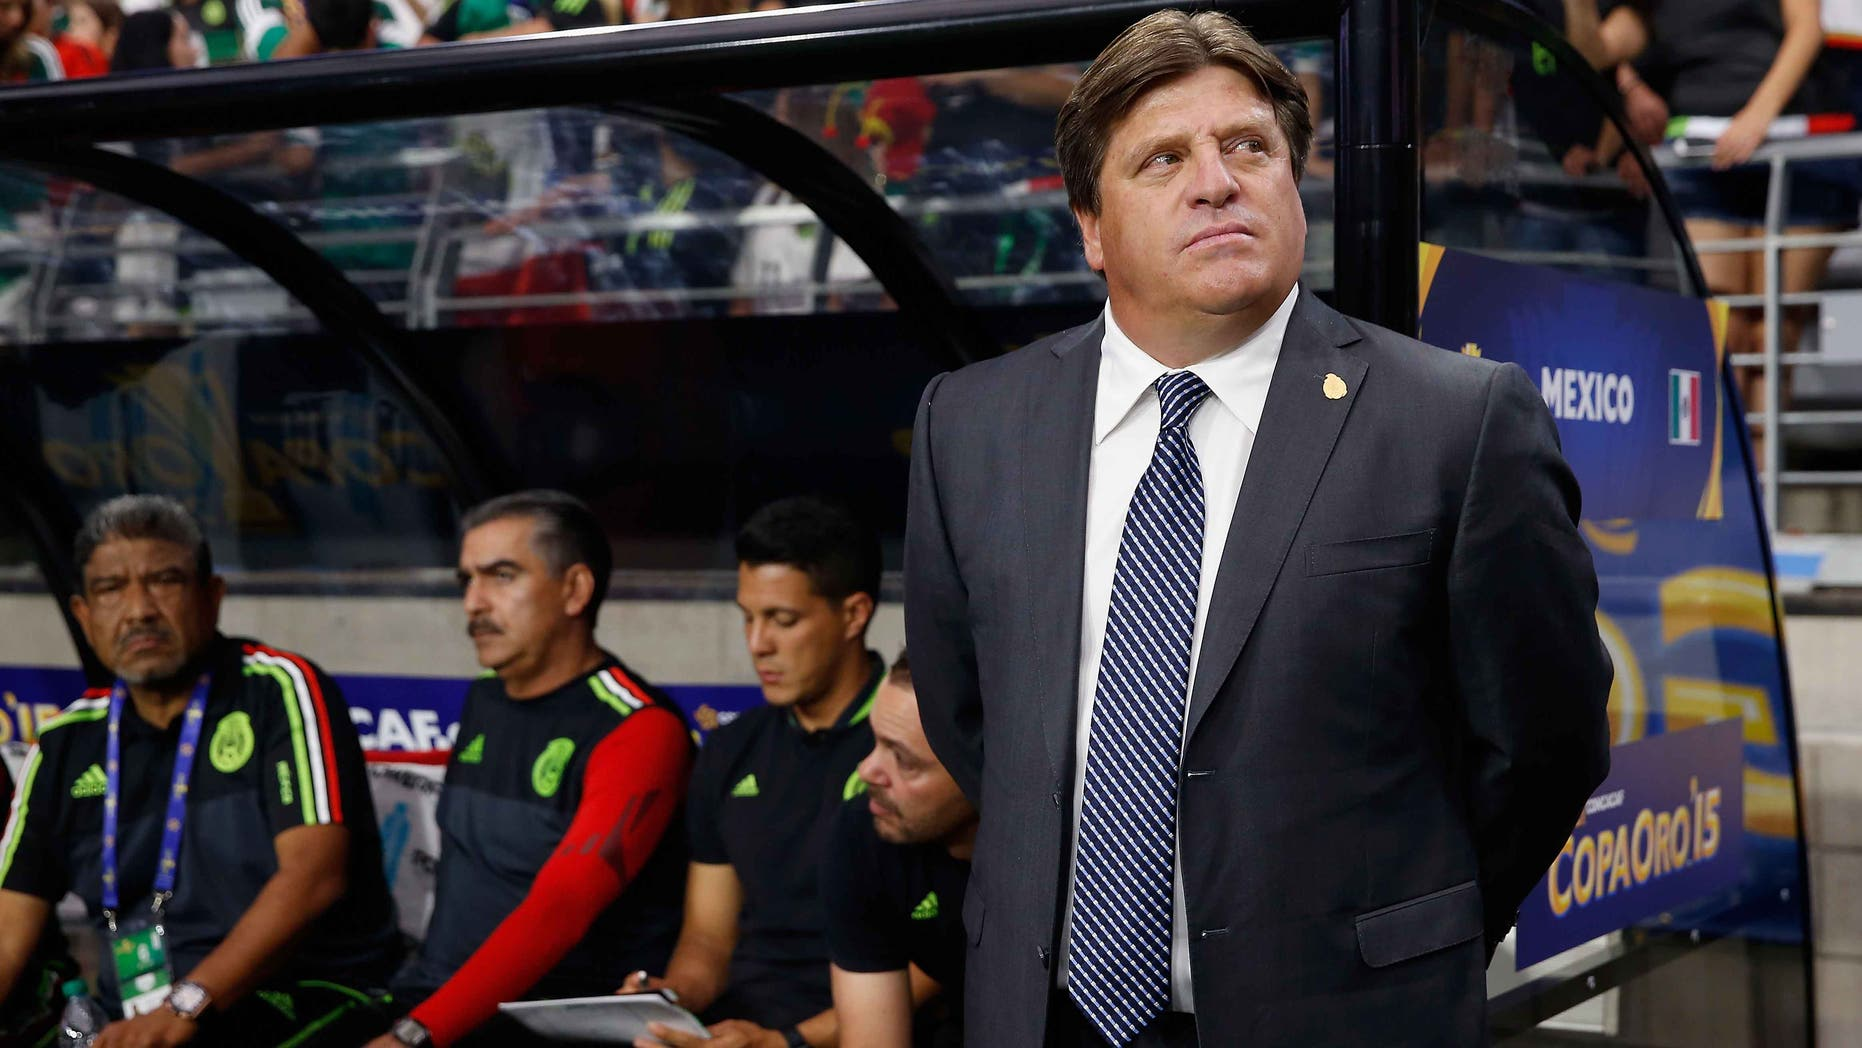 Miguel Herrera during the 2015 CONCACAF against Guatemala on July 12, 2015 in Glendale, Arizona.